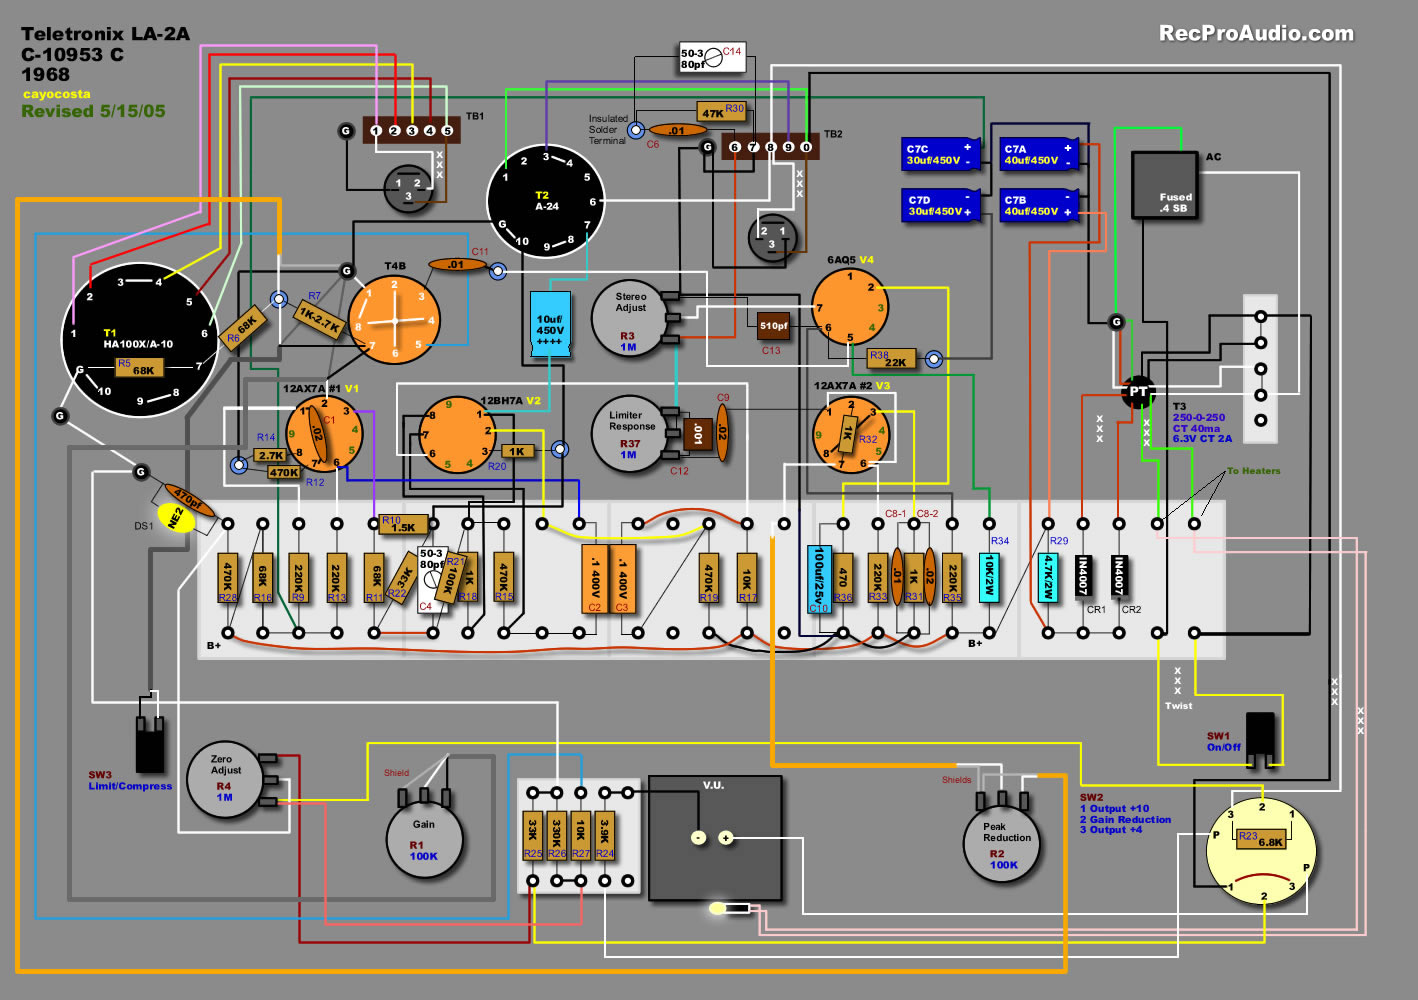 hight resolution of schematic fender deluxe 5e3 layout fender 5e3 chassis fender hot rod deville 212 schematics fender hot rod deluxe schematic diagram